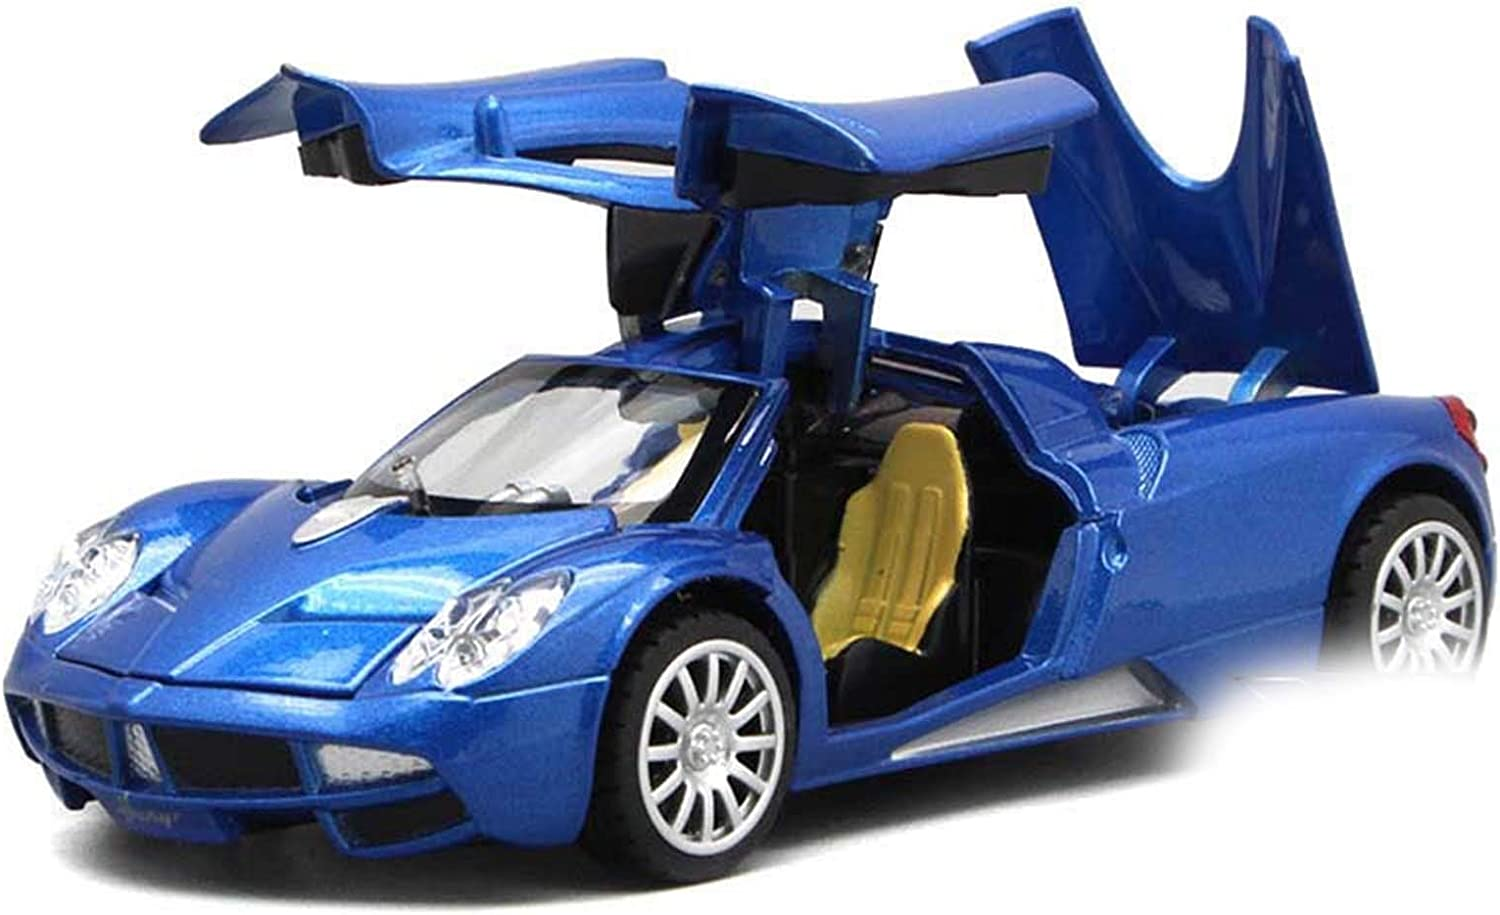 NMBZ 1:32 for Pagani Alloy depot Die Cast Cars Popular brand Mus Toy Pull Back Model